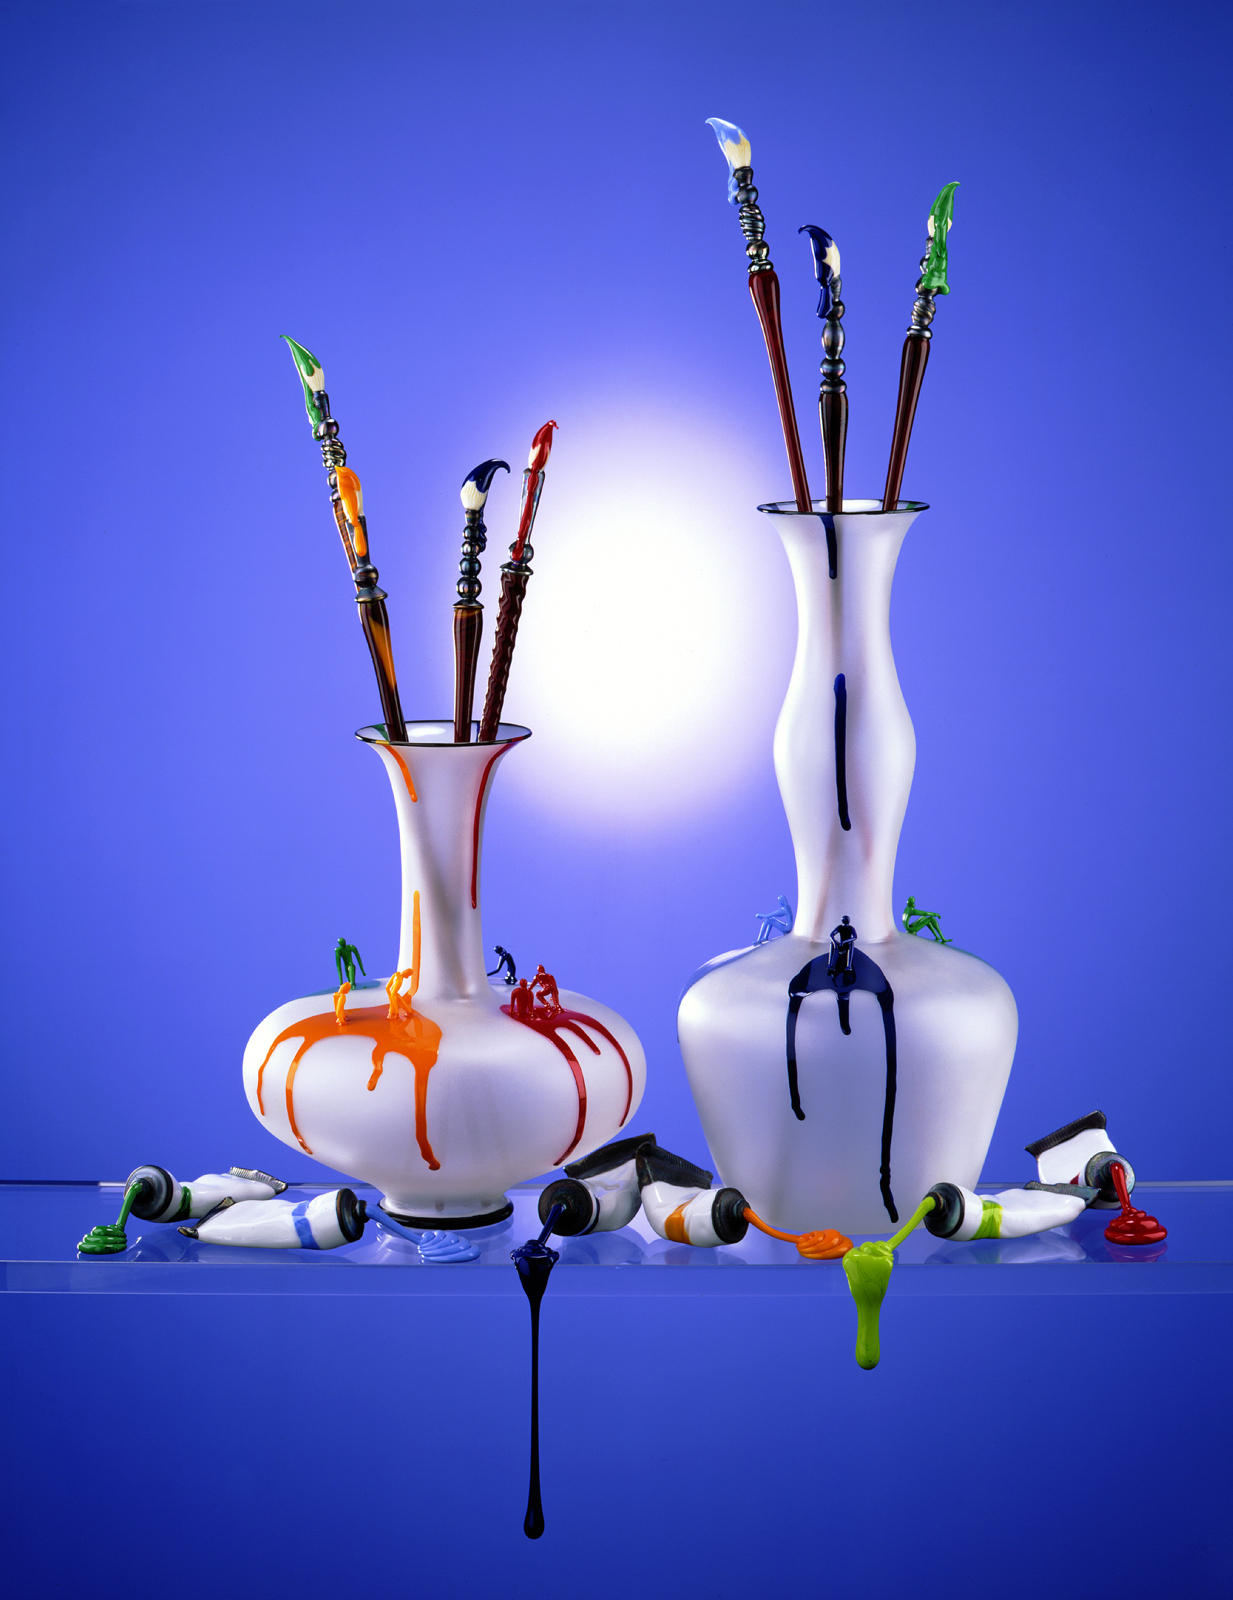 The Best of Glass Sculpture and Lampworking Art: Cesare Toffolo ©Corning Museum of Glass Glass Sculpture The Best of Glass Sculpture and Lampworking Art: Cesare Toffolo Cesare Toffolo Colori